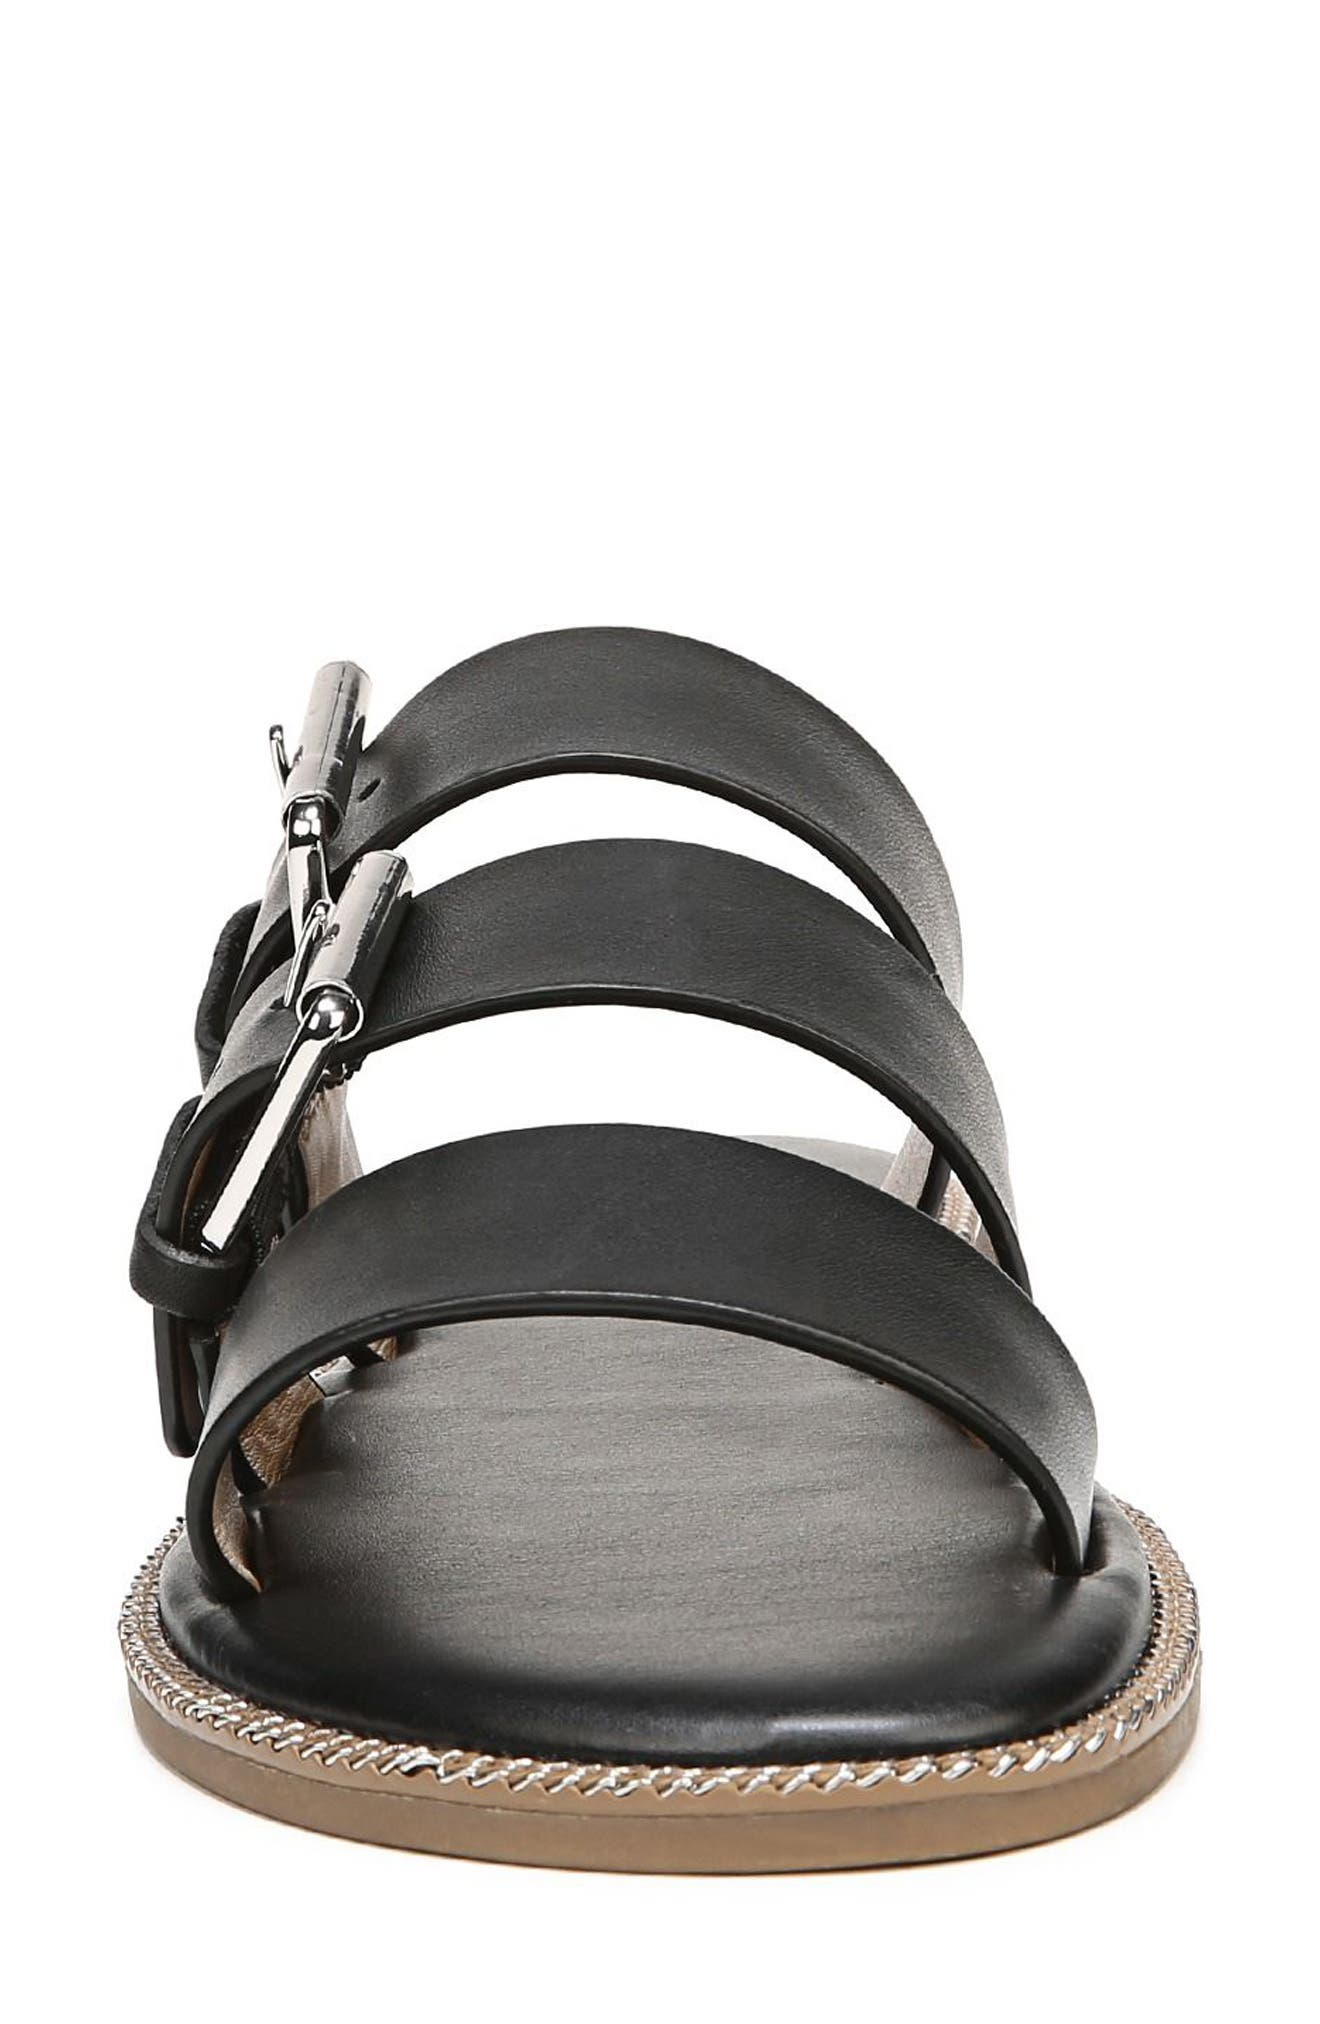 SARTO by Franco Sarto Kasa Three Strap Slide Sandal,                             Alternate thumbnail 4, color,                             BLACK LEATHER